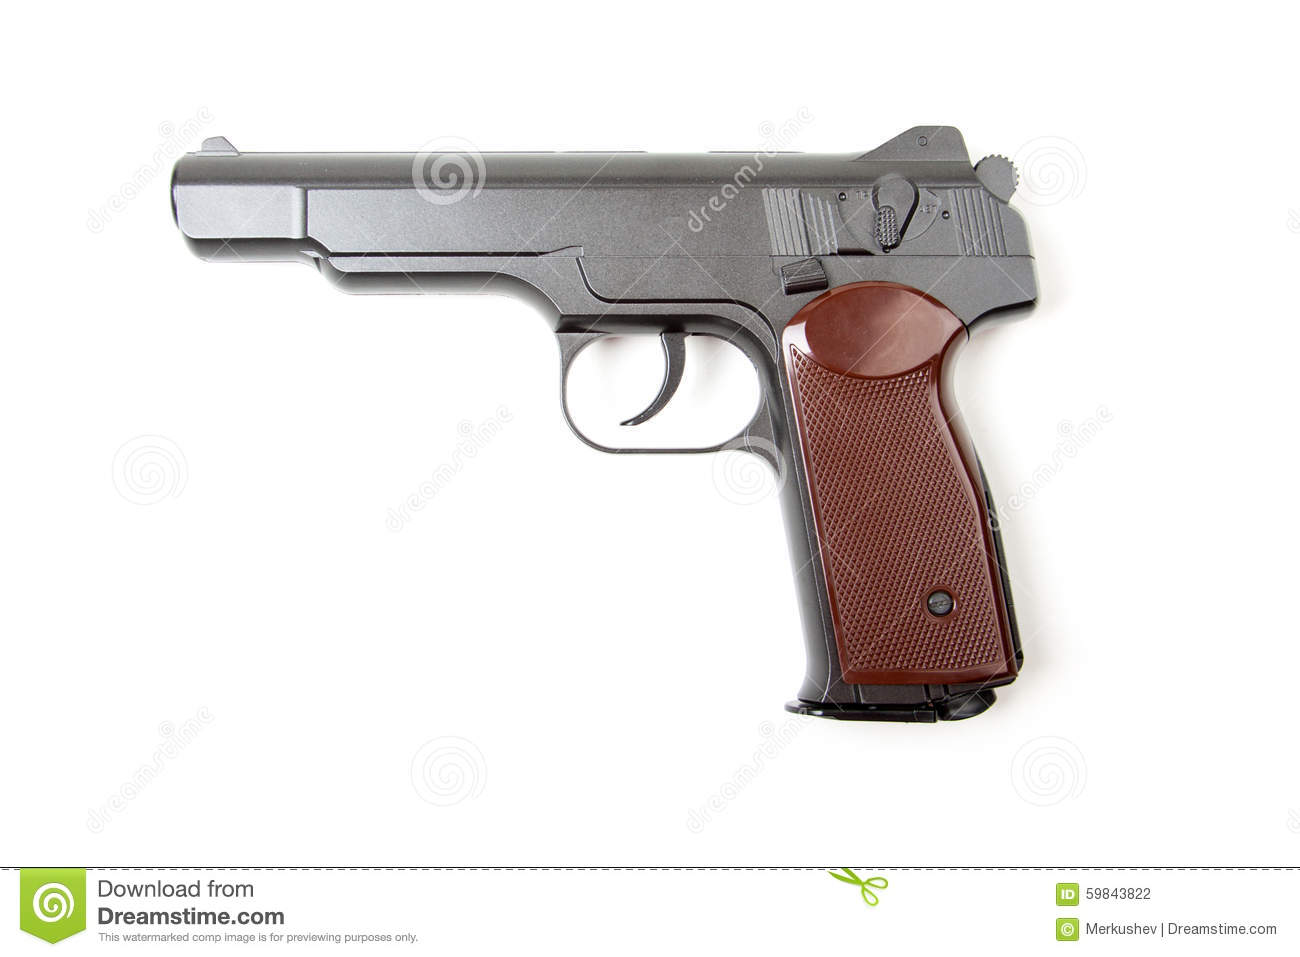 gun white background - photo #48